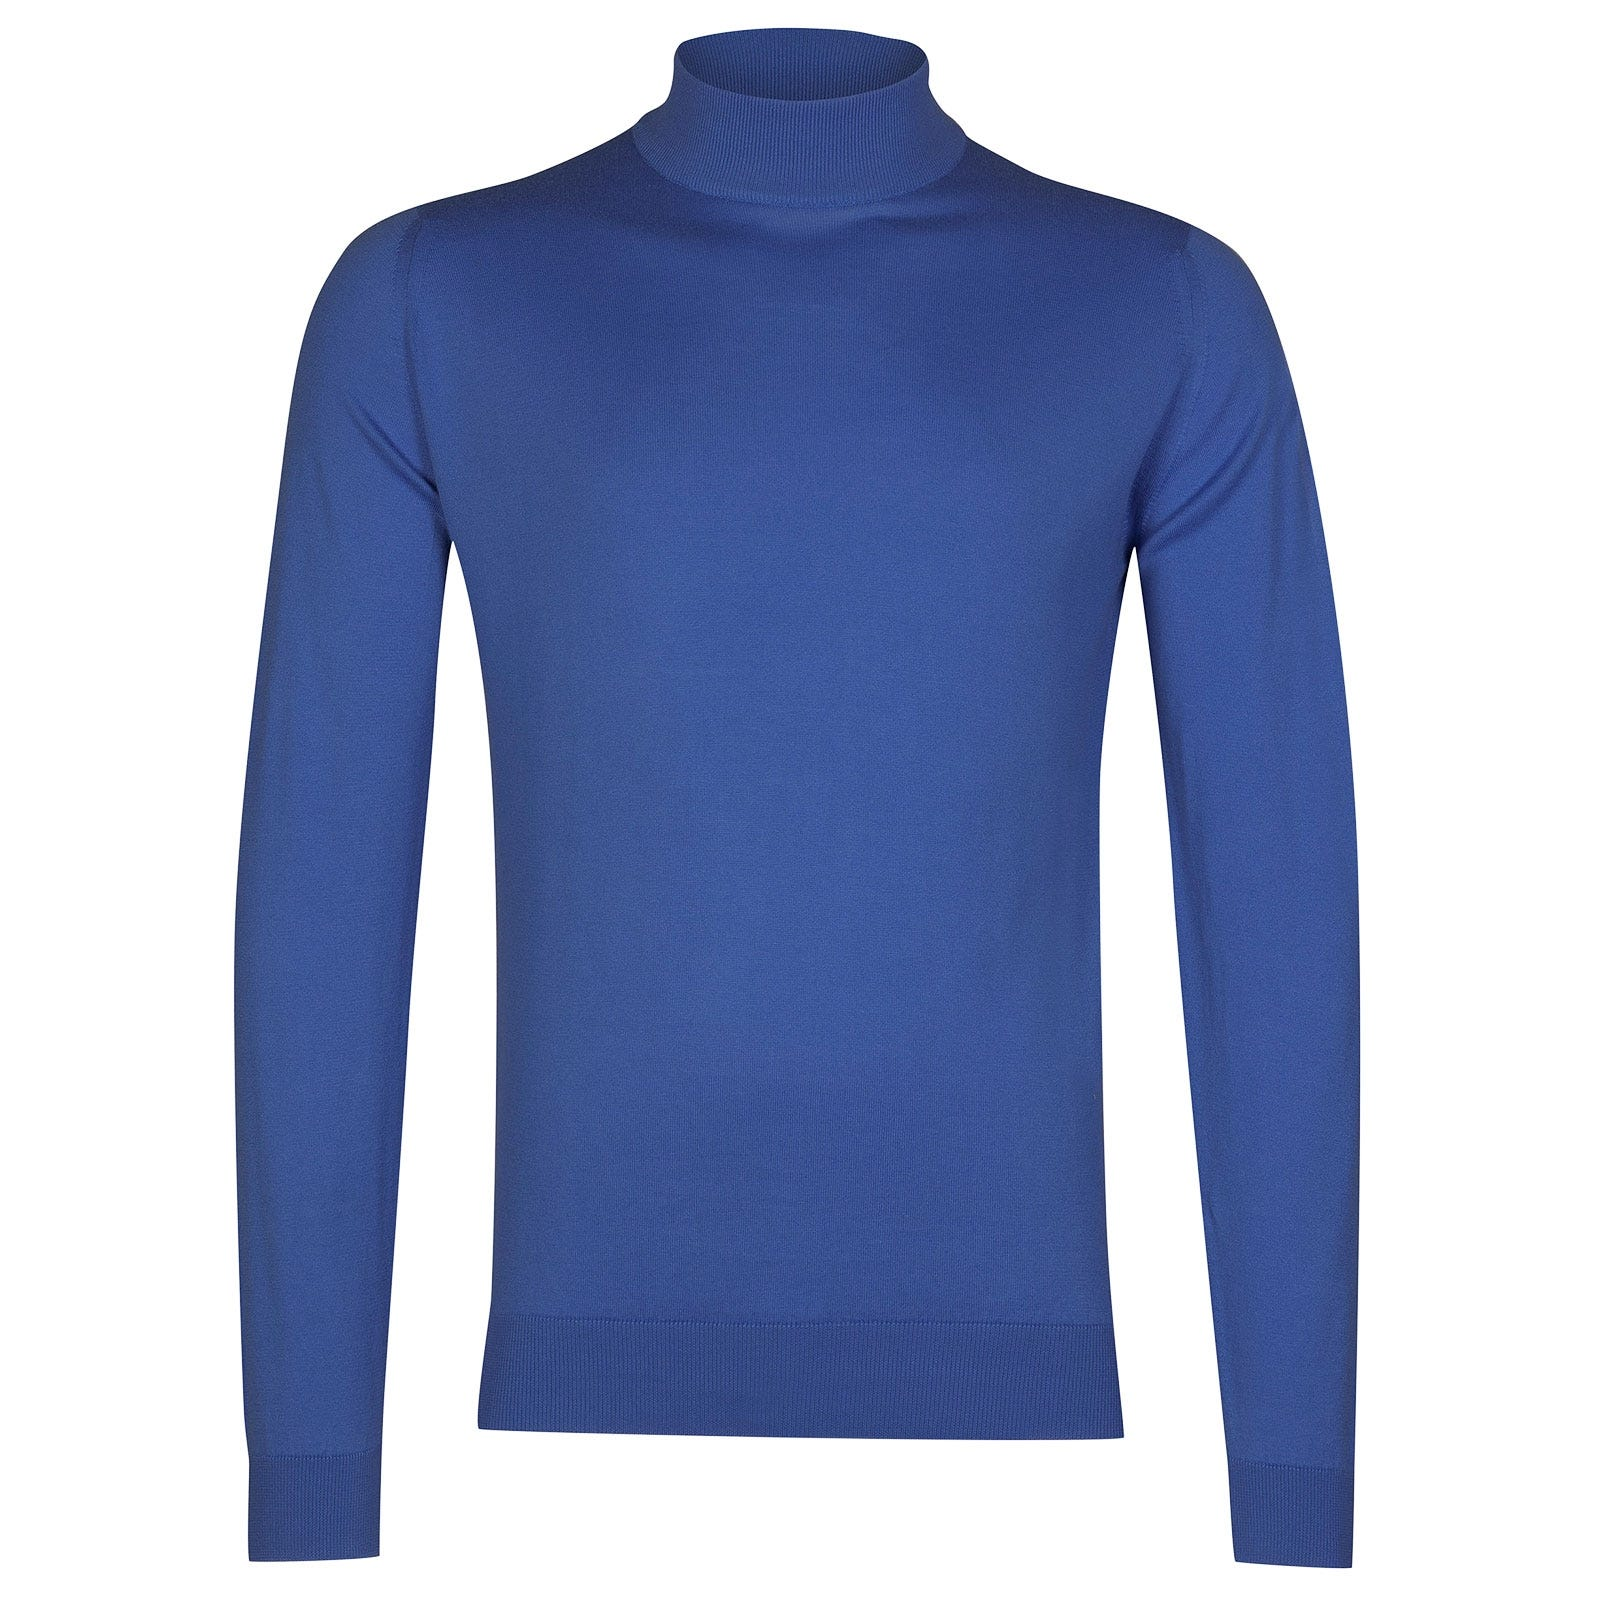 John Smedley Bradgate Sea Island Cotton Pullover in Chambray Blue-M